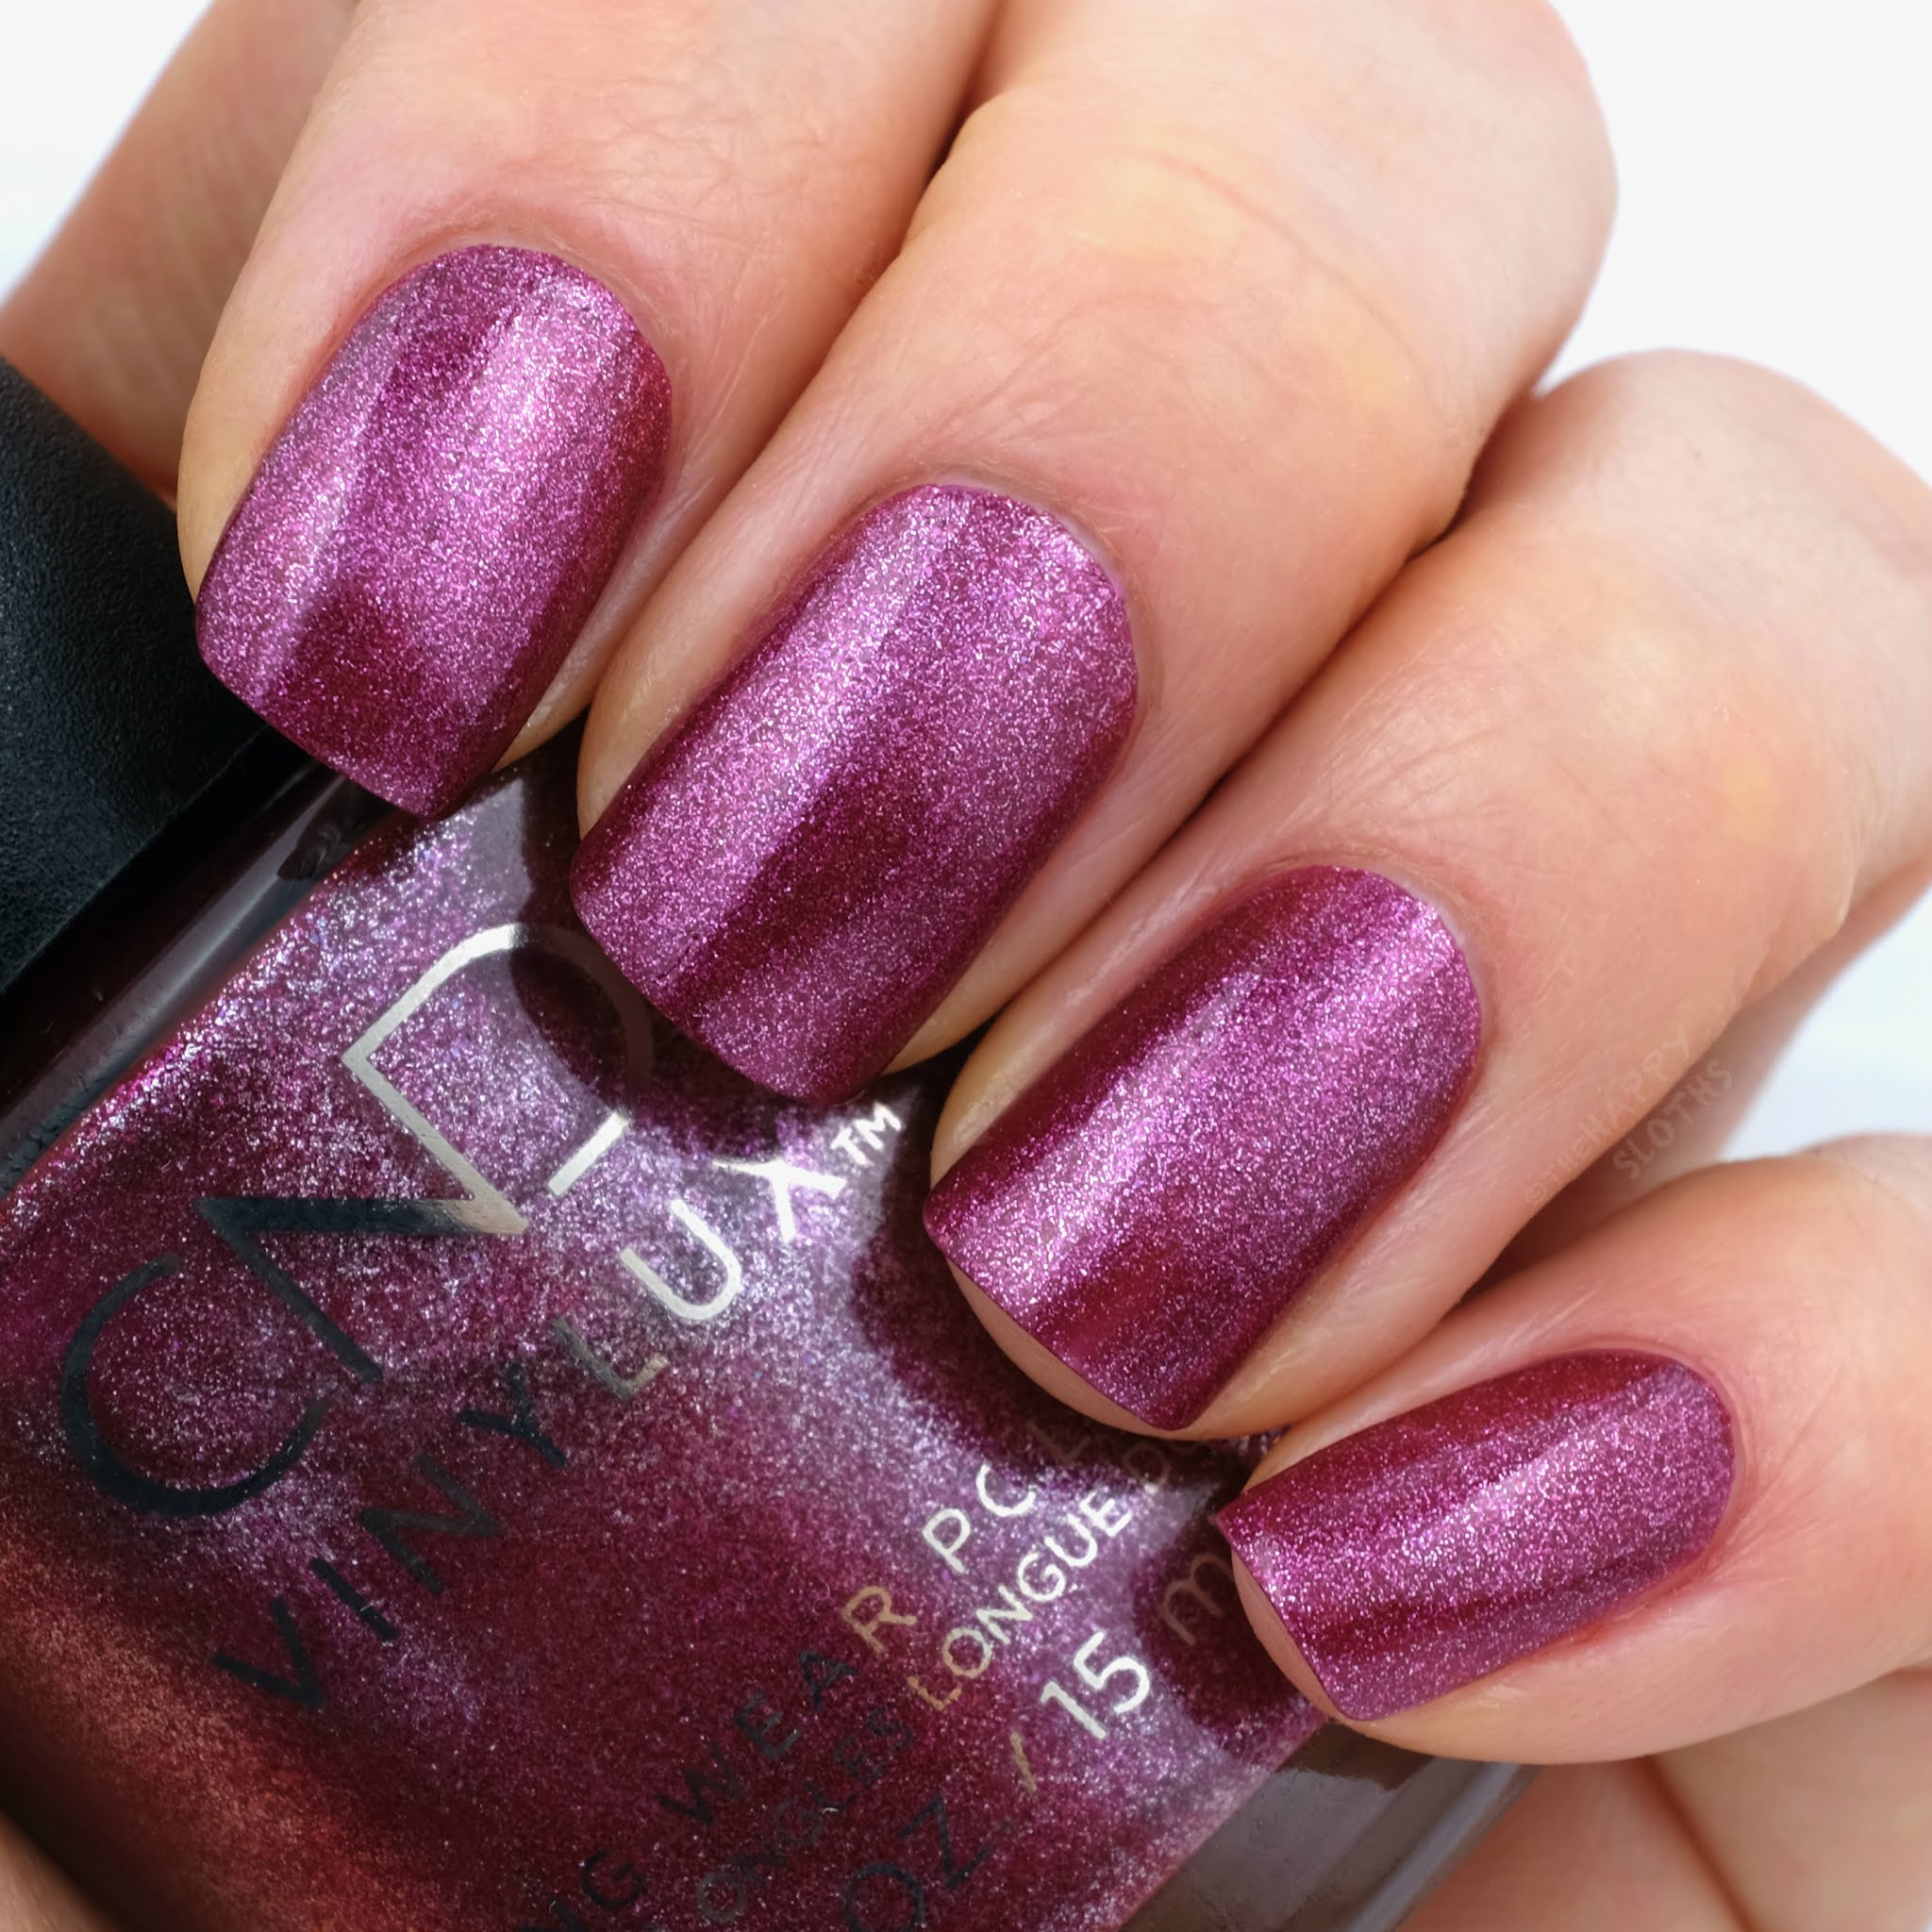 CND | Holiday 2020 Cocktail Couture Collection | Drama Queen: Review and Swatches